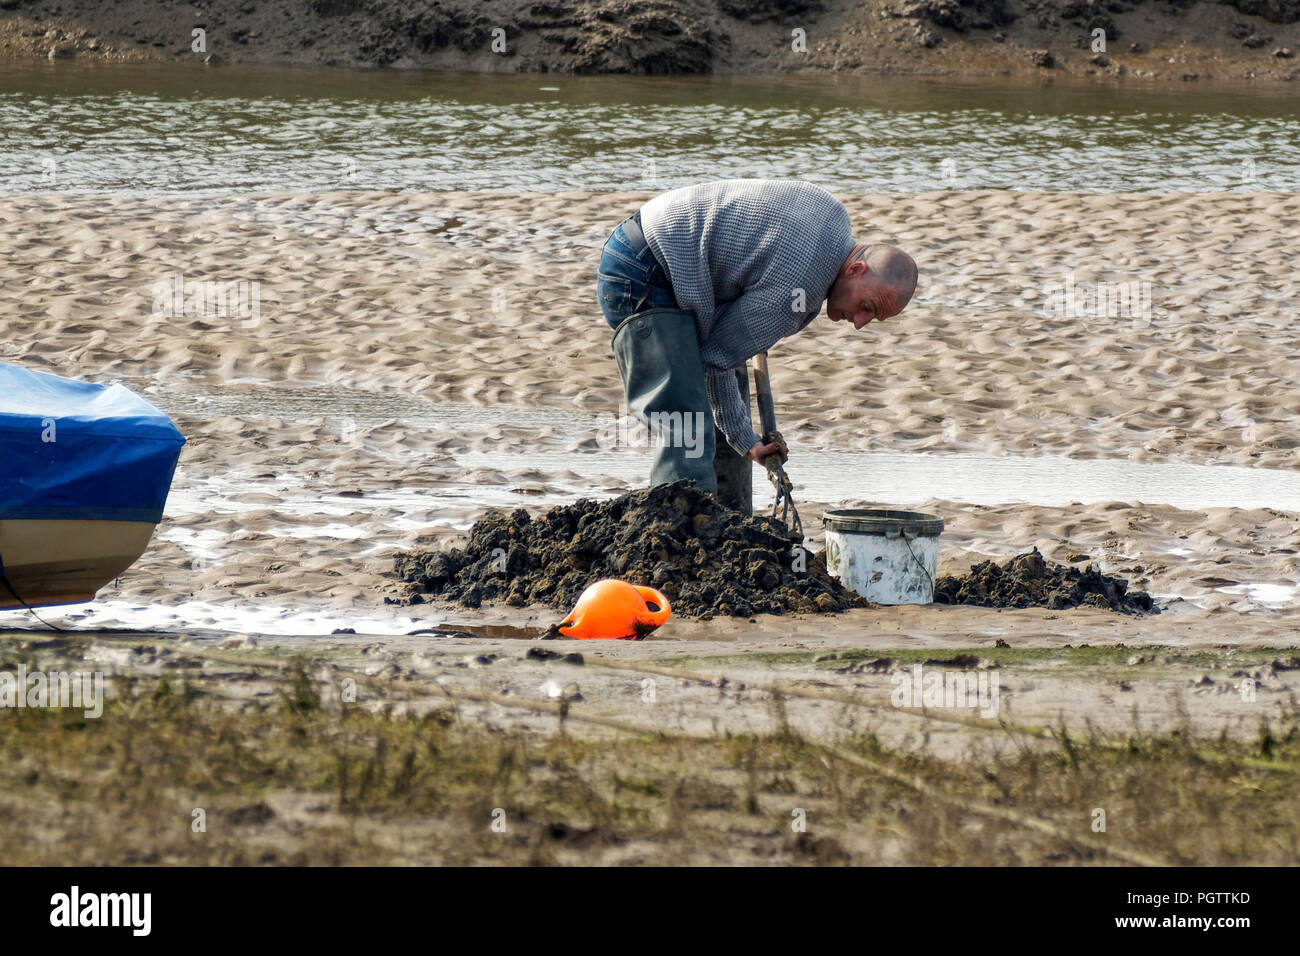 Man digging for lugworms at low tide - Stock Image